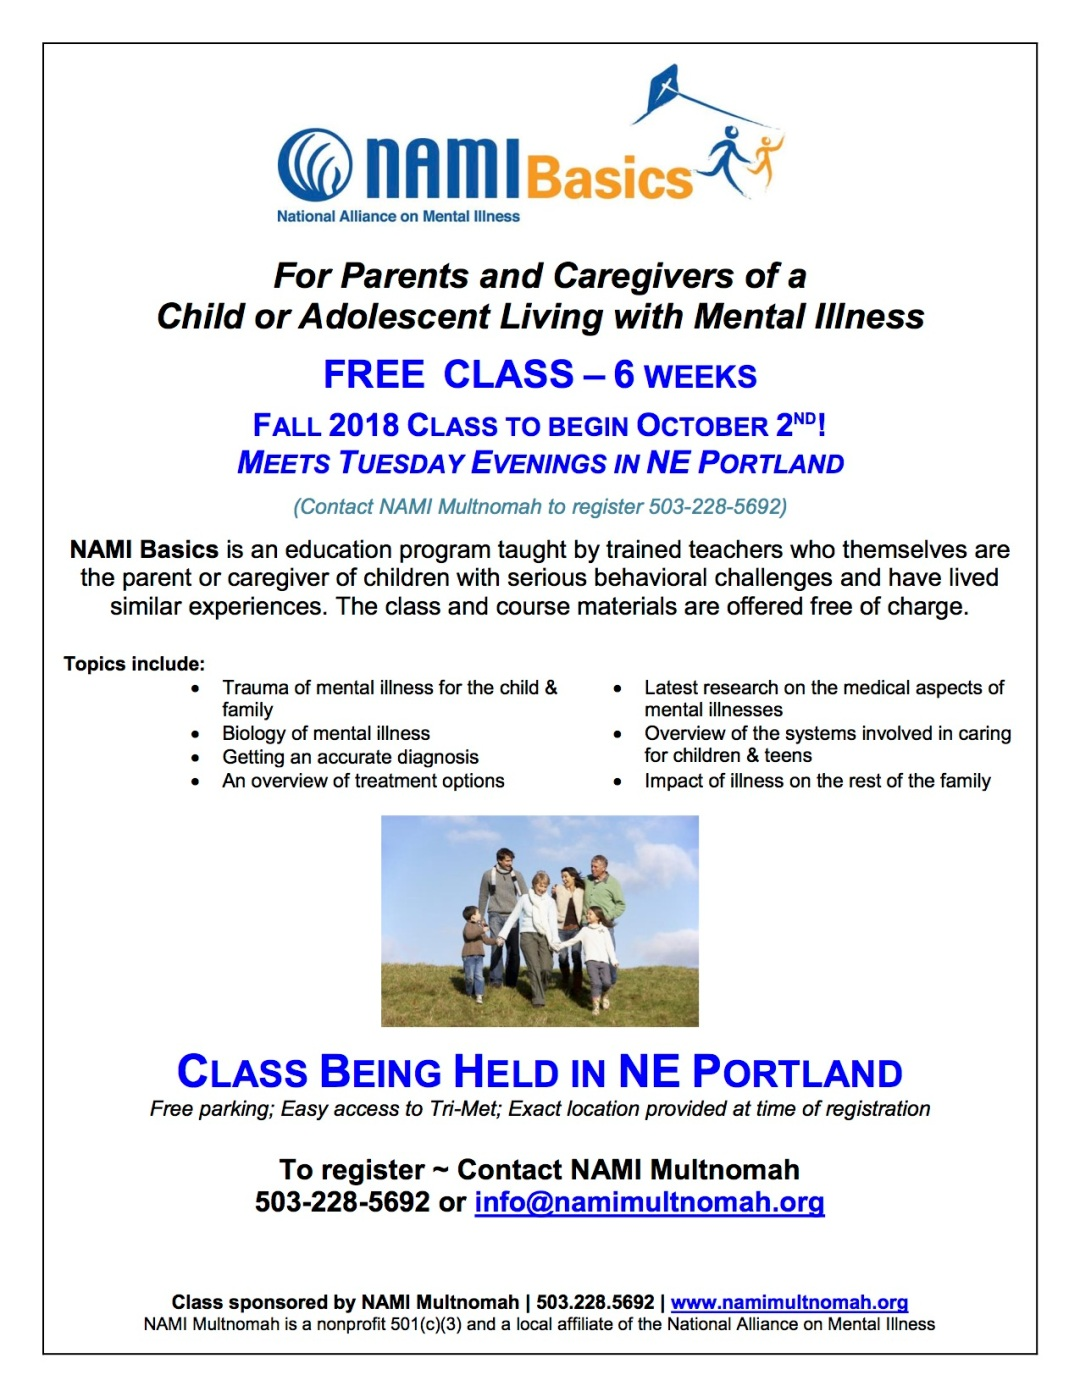 NAMI_Basics_Fall_2018_class_flyer